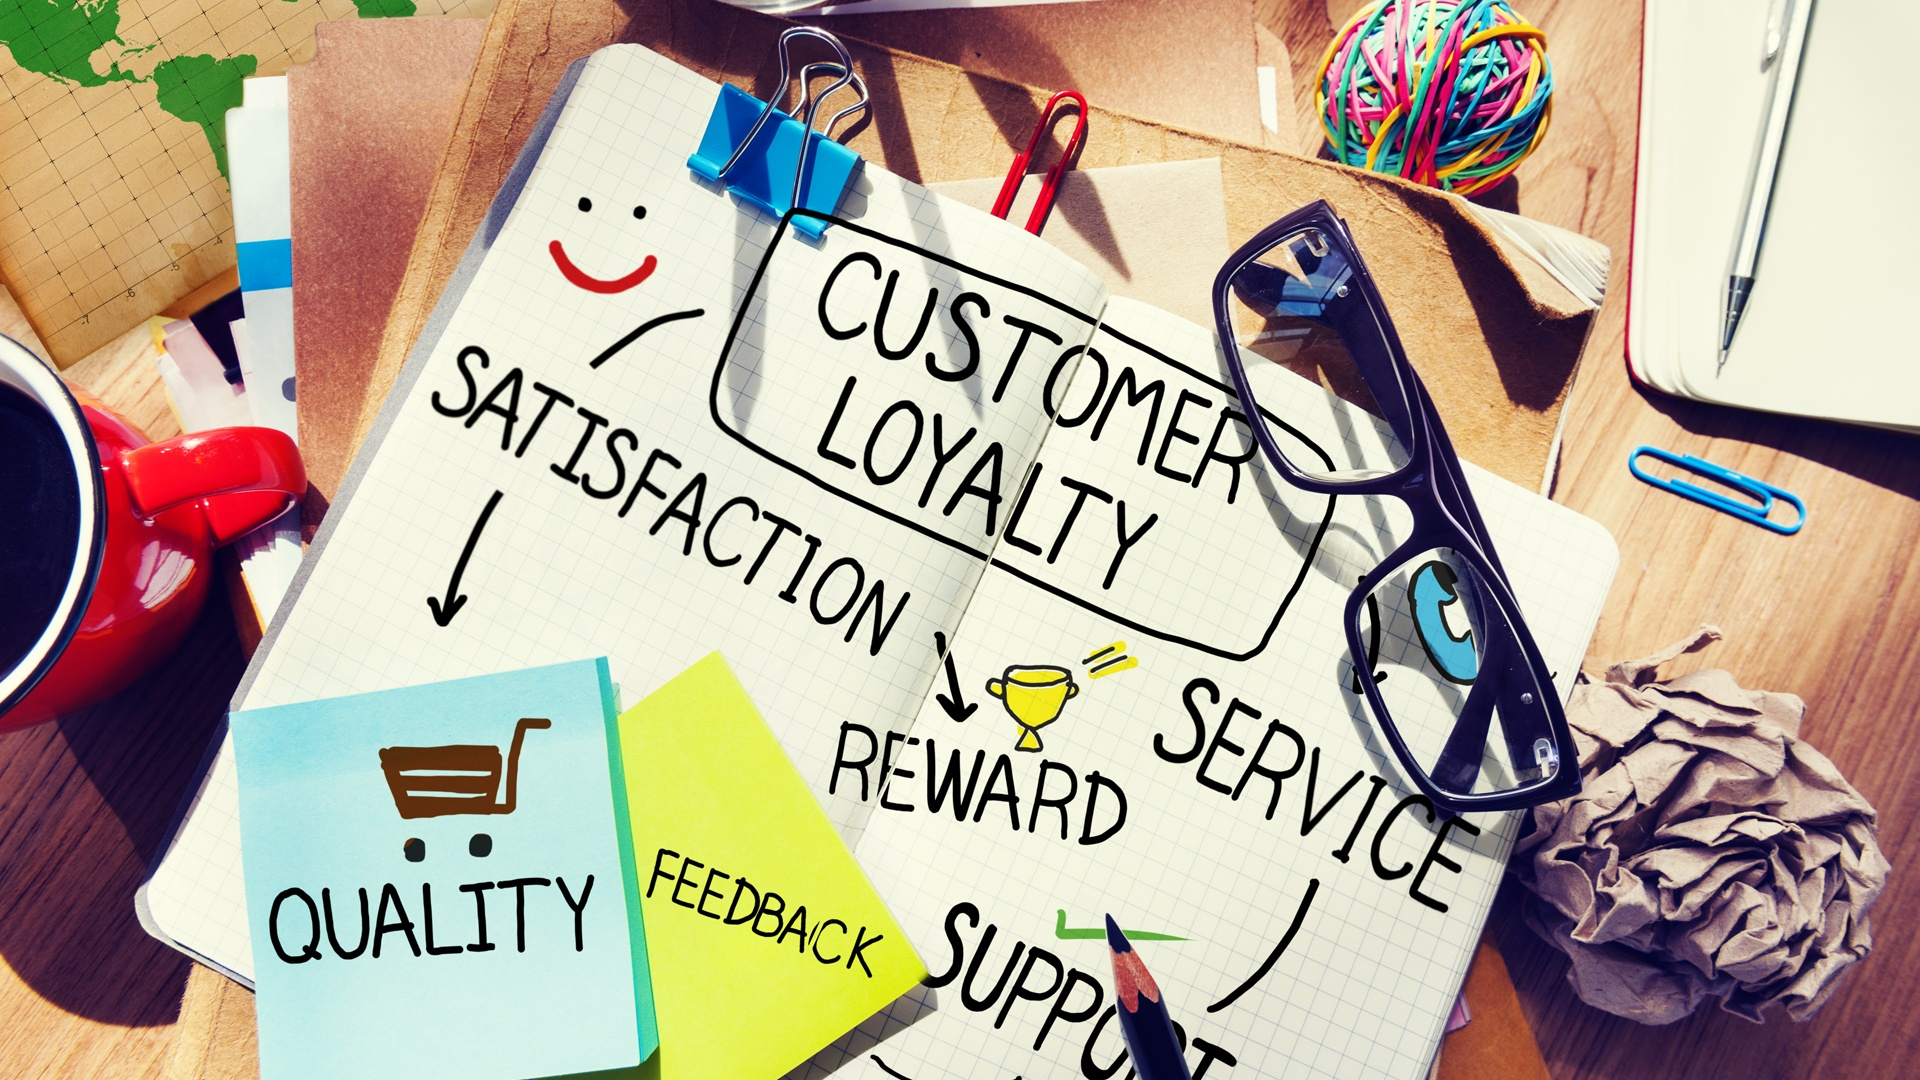 Driving Customer Loyalty with SMS Marketing - Tips from Textedly